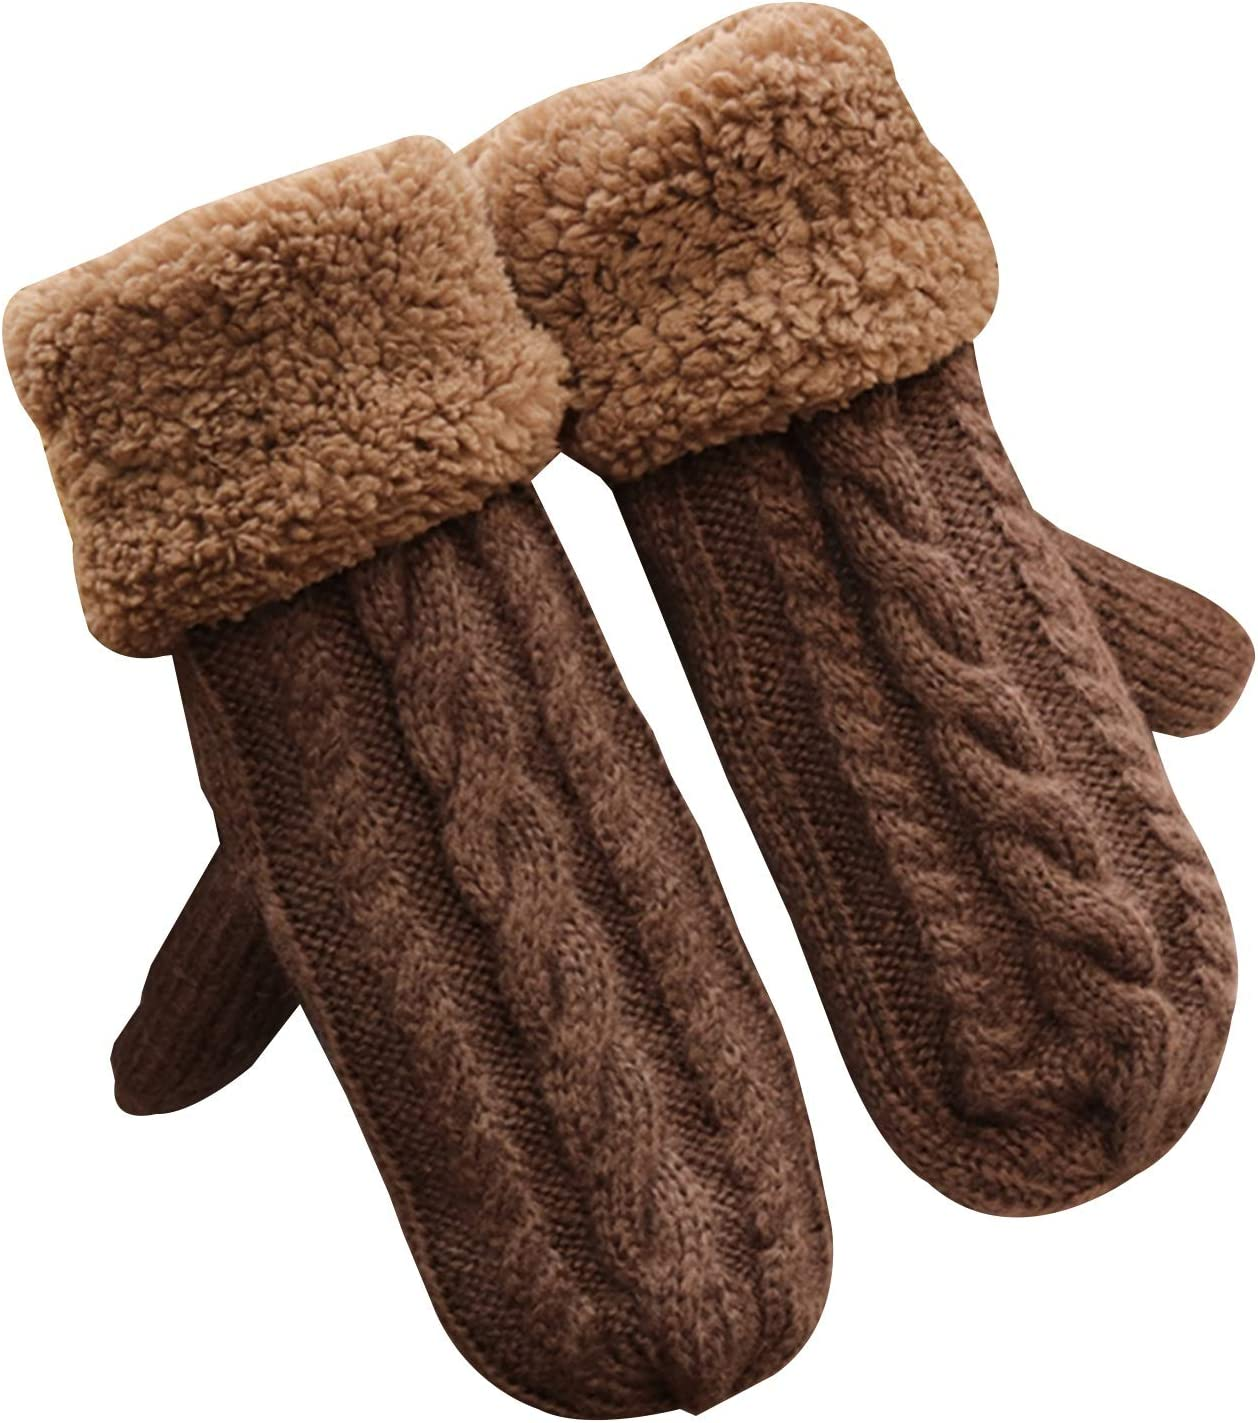 Gloves Winter Gloves Warm Lining Gloves-Comfortable Knitted Woolen Thick Gloves Novel Gloves Winter Cold Weather Accessories (Color : Khaki)